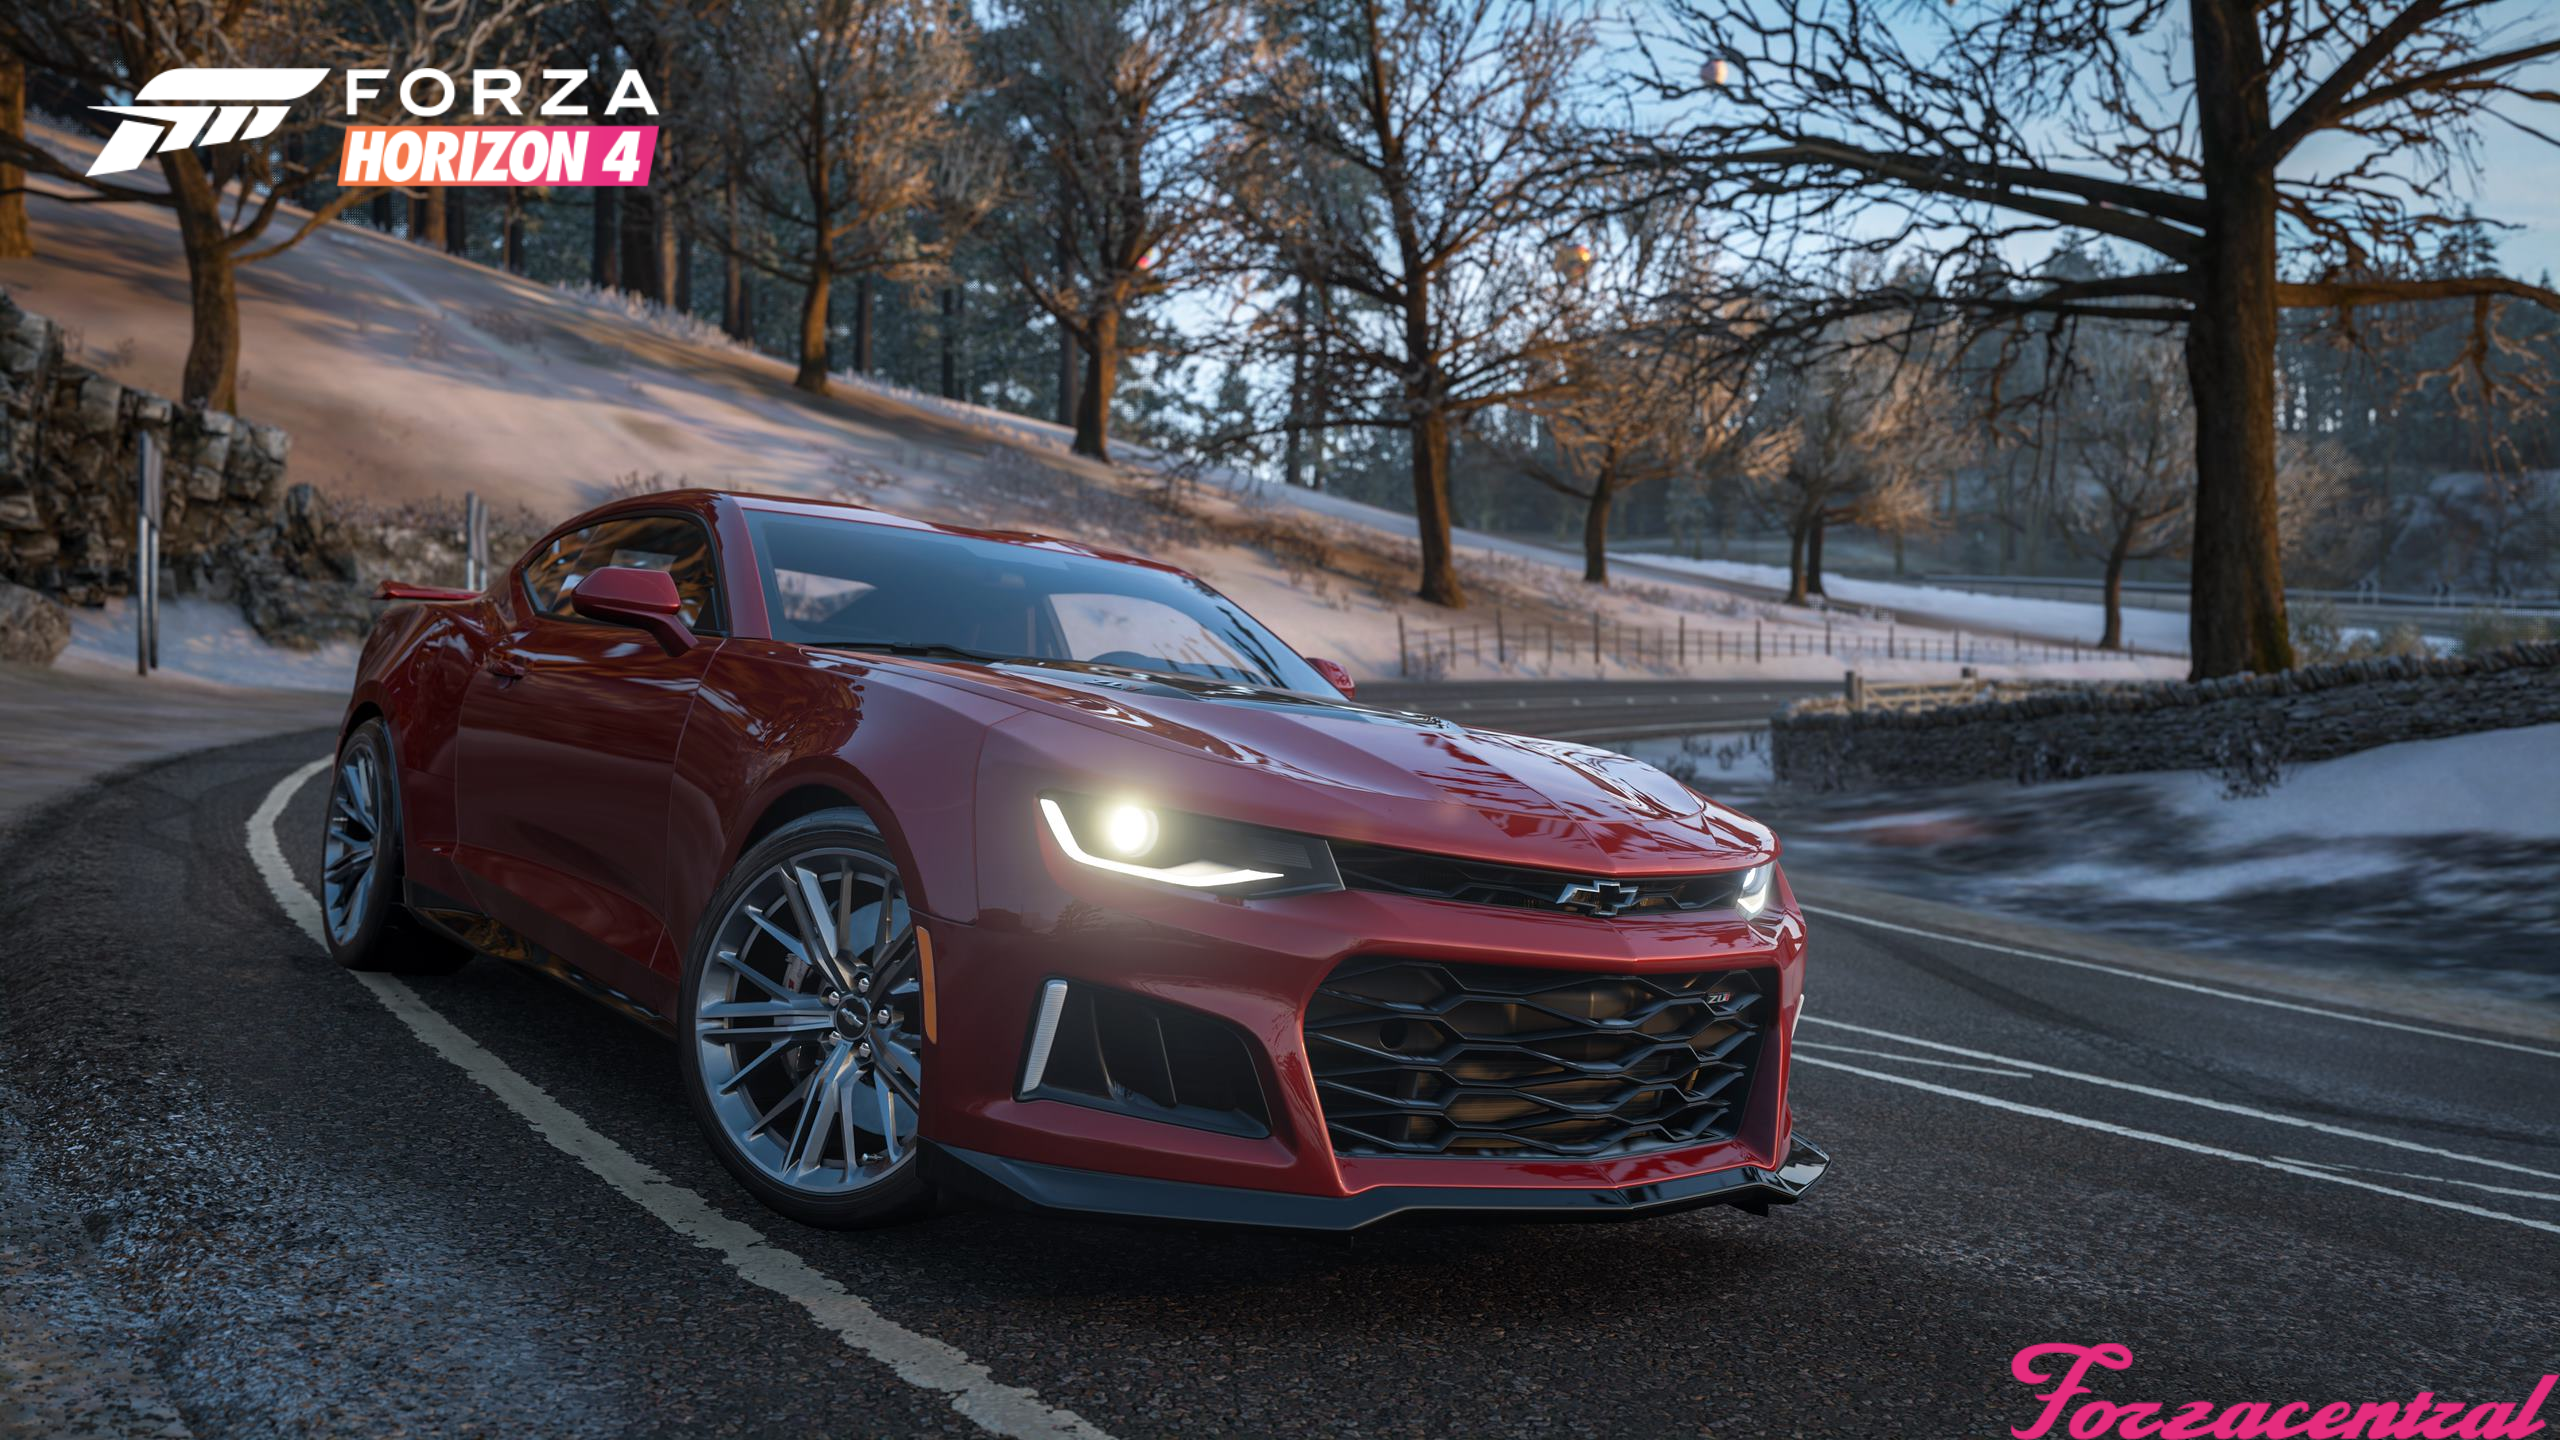 fh4 forza horizon 4 vehicle list wip updated. Black Bedroom Furniture Sets. Home Design Ideas